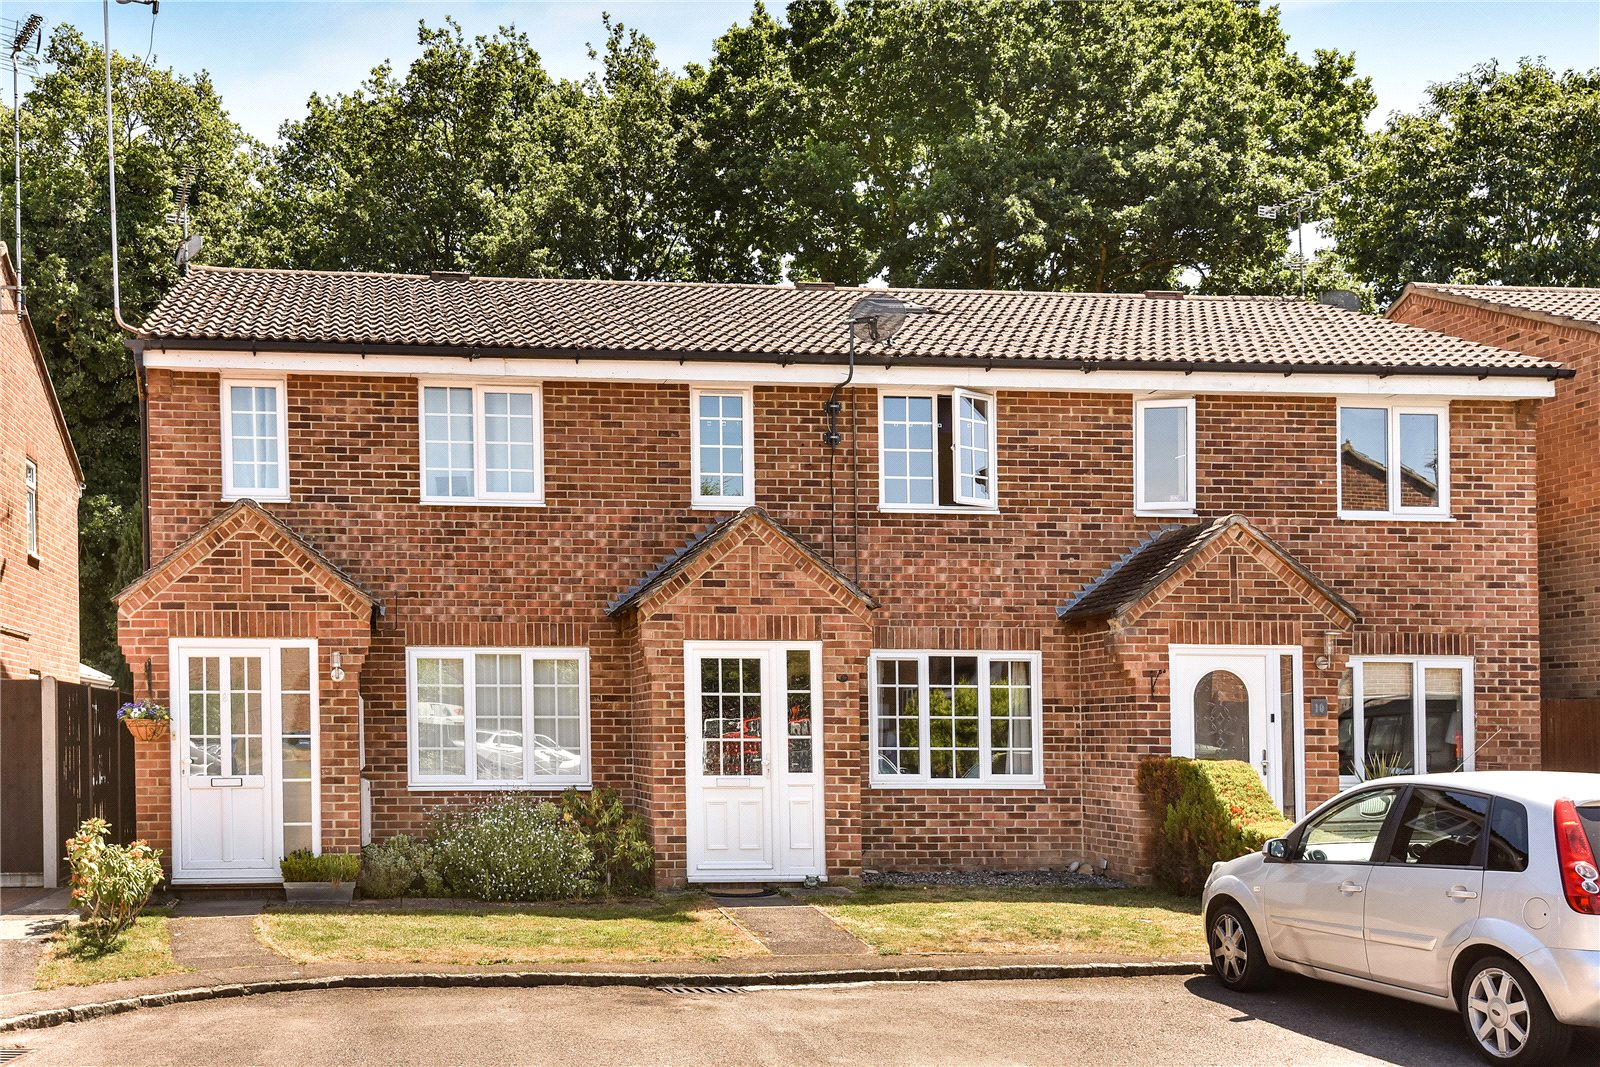 3 Bedrooms Terraced House for sale in Hornbeam Close, Owlsmoor, Sandhurst, Berkshire, GU47